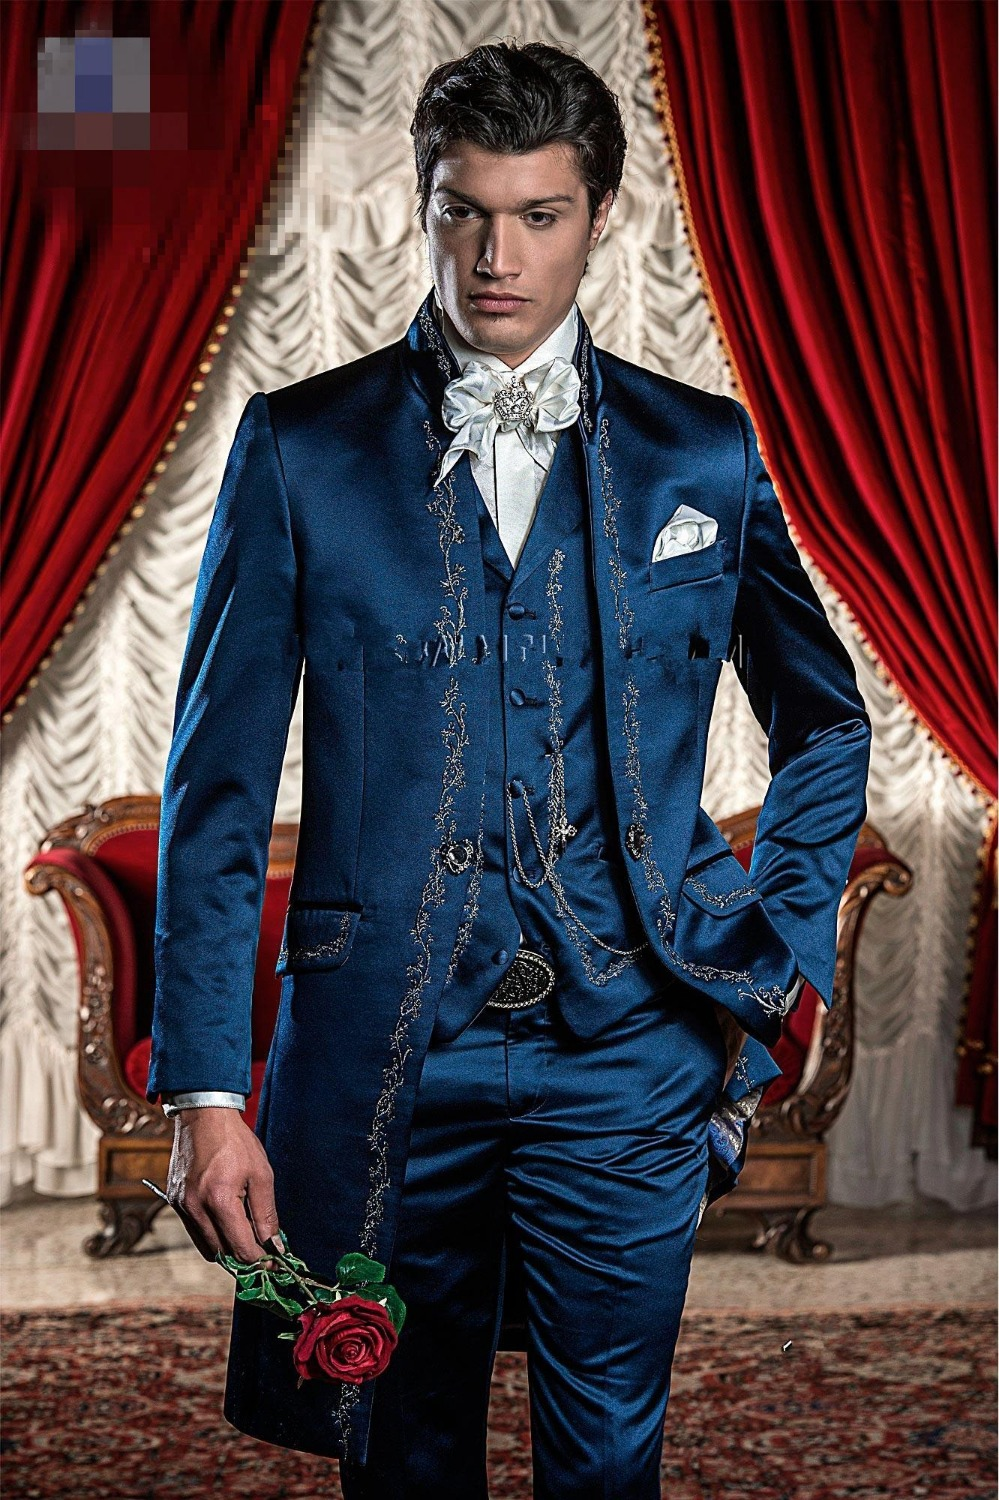 New Arrival Blue Embroidery Groom Tuxedos Groomsmen Men's Wedding Prom Suits Custom Made (Jacket+Pants+Vest) K:165